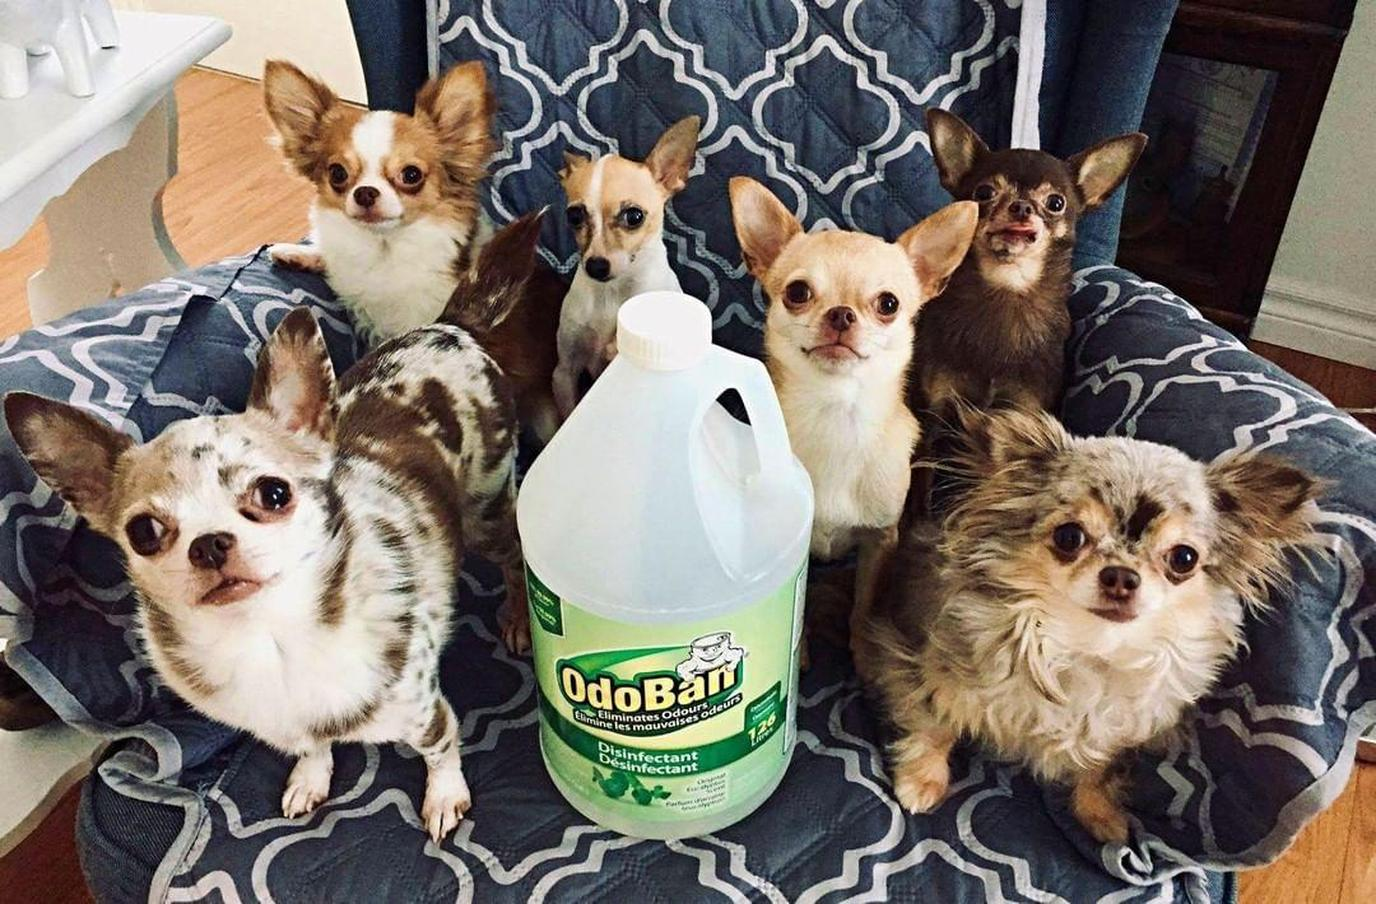 Use a pet-safe floor cleaner like OdoBan Floor Cleaner.